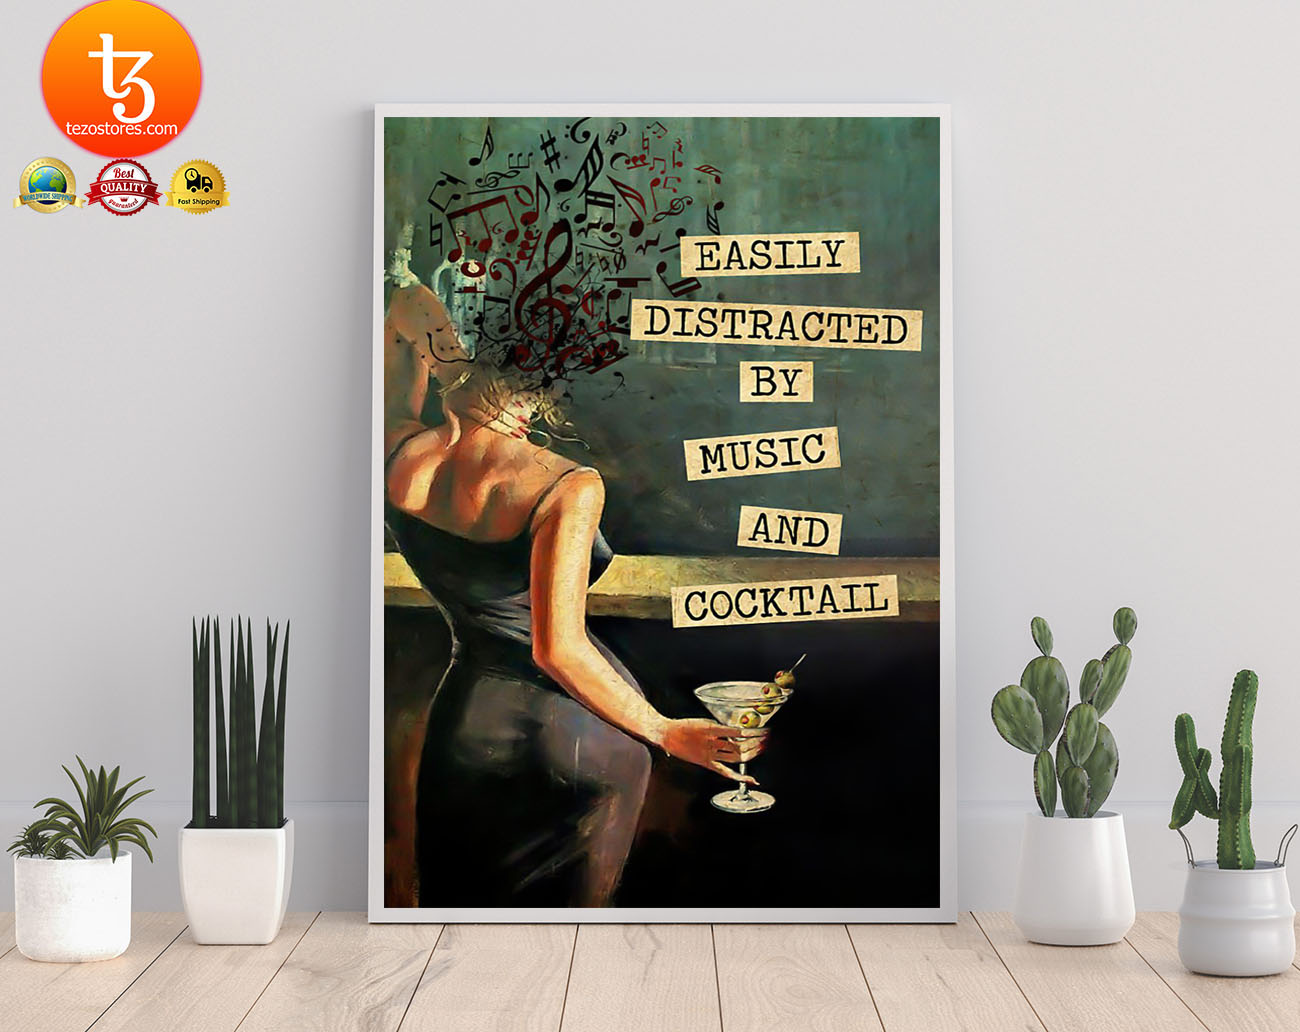 Easily distracted by music and cocktail poster 21